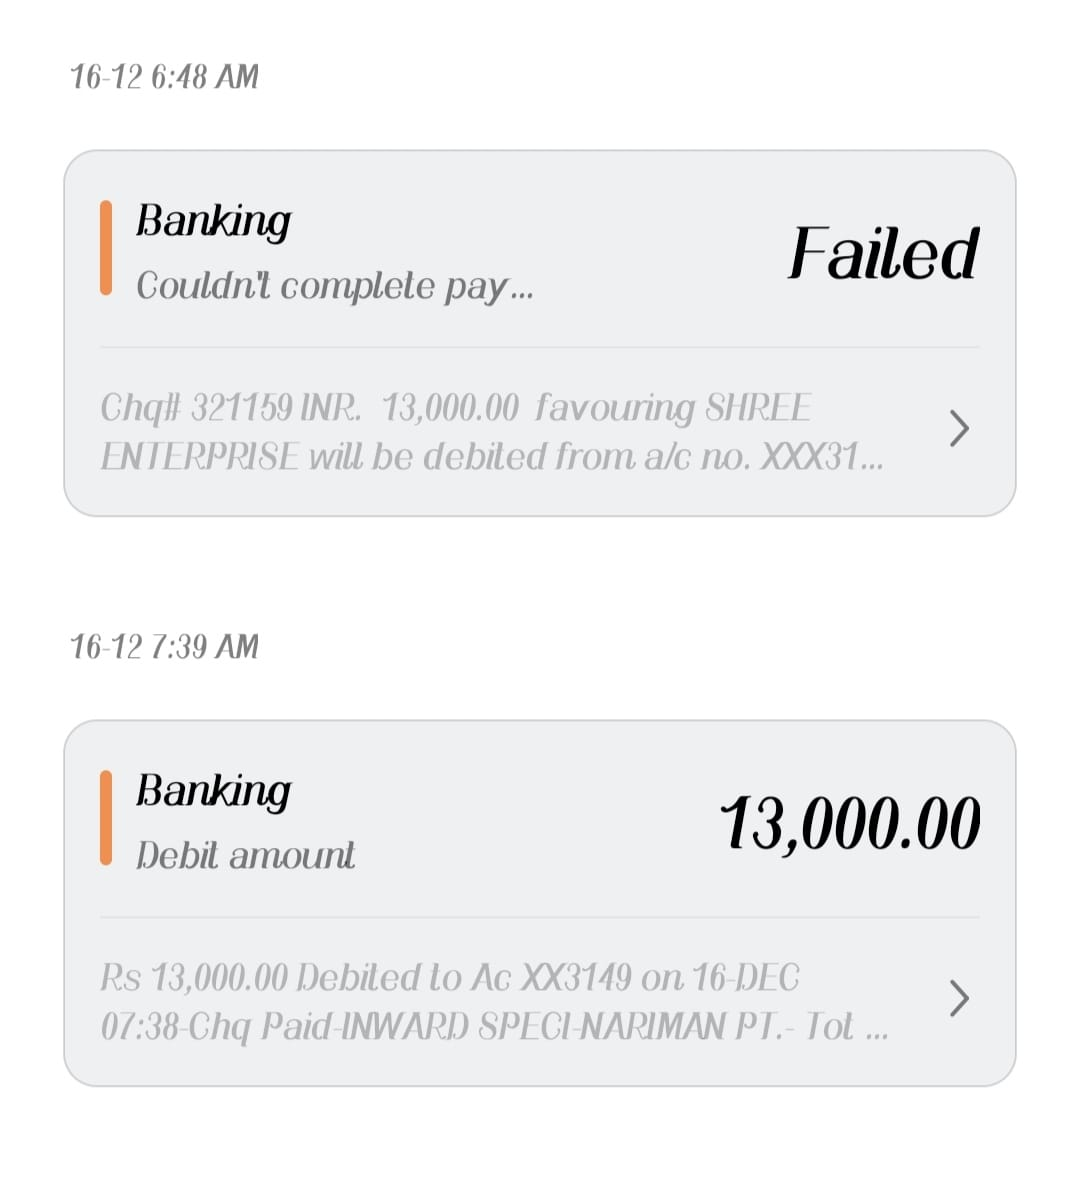 @YESBANK @YESBANK13 IN THIS YES BANK ACCOUNT 13000 WAS DEBITED ON 16-DEC-2020 WHICH INFORMATION REPORT I HAS SEEK FROM CONSERN BANK BRANCH BUT AFTER GIVING ALMOST 7 TO 8 COMPLAINTS STILL BANK WORKER #NIKITAKOLI IS NOT PROVIDING ANY INFO OR ANY FEEDBACK TO US @RBI #REFUND #RESOLVE